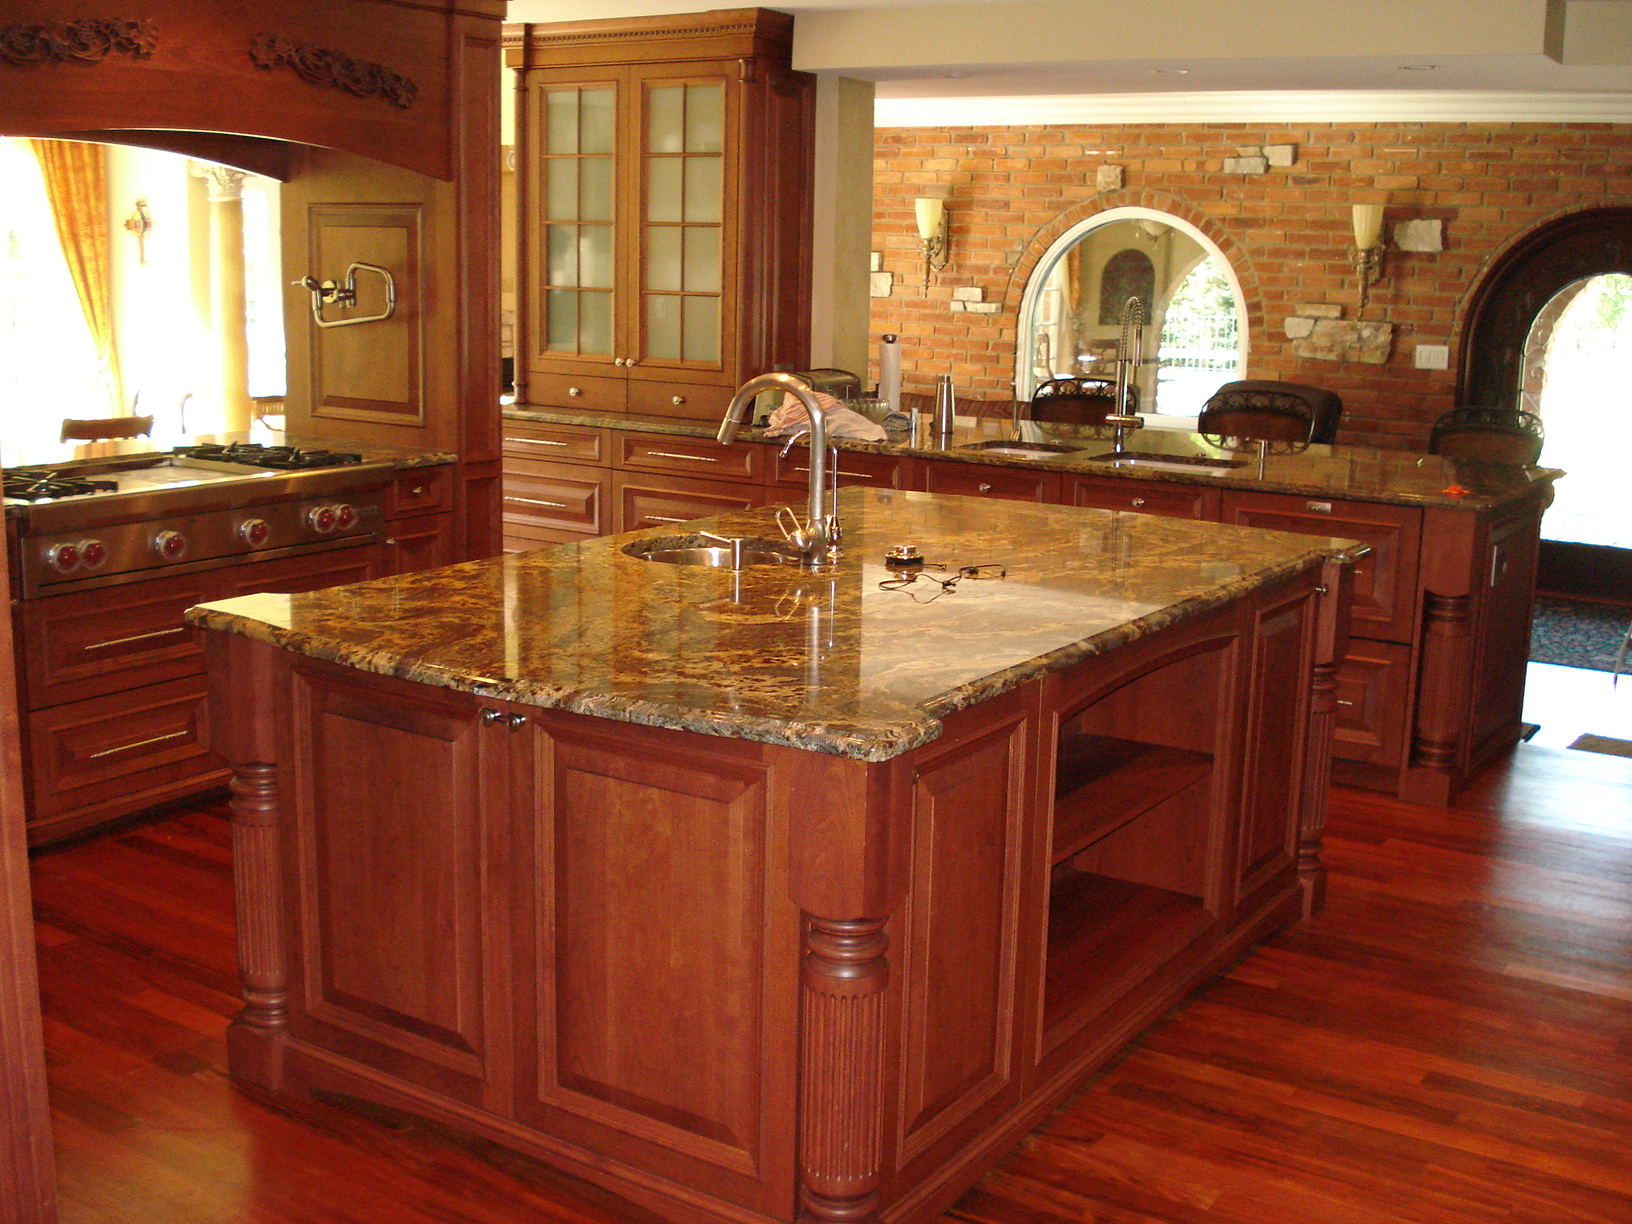 Kitchen And Bath By Design Rockford Mi Sarkemnet - Kitchens and bathrooms by design